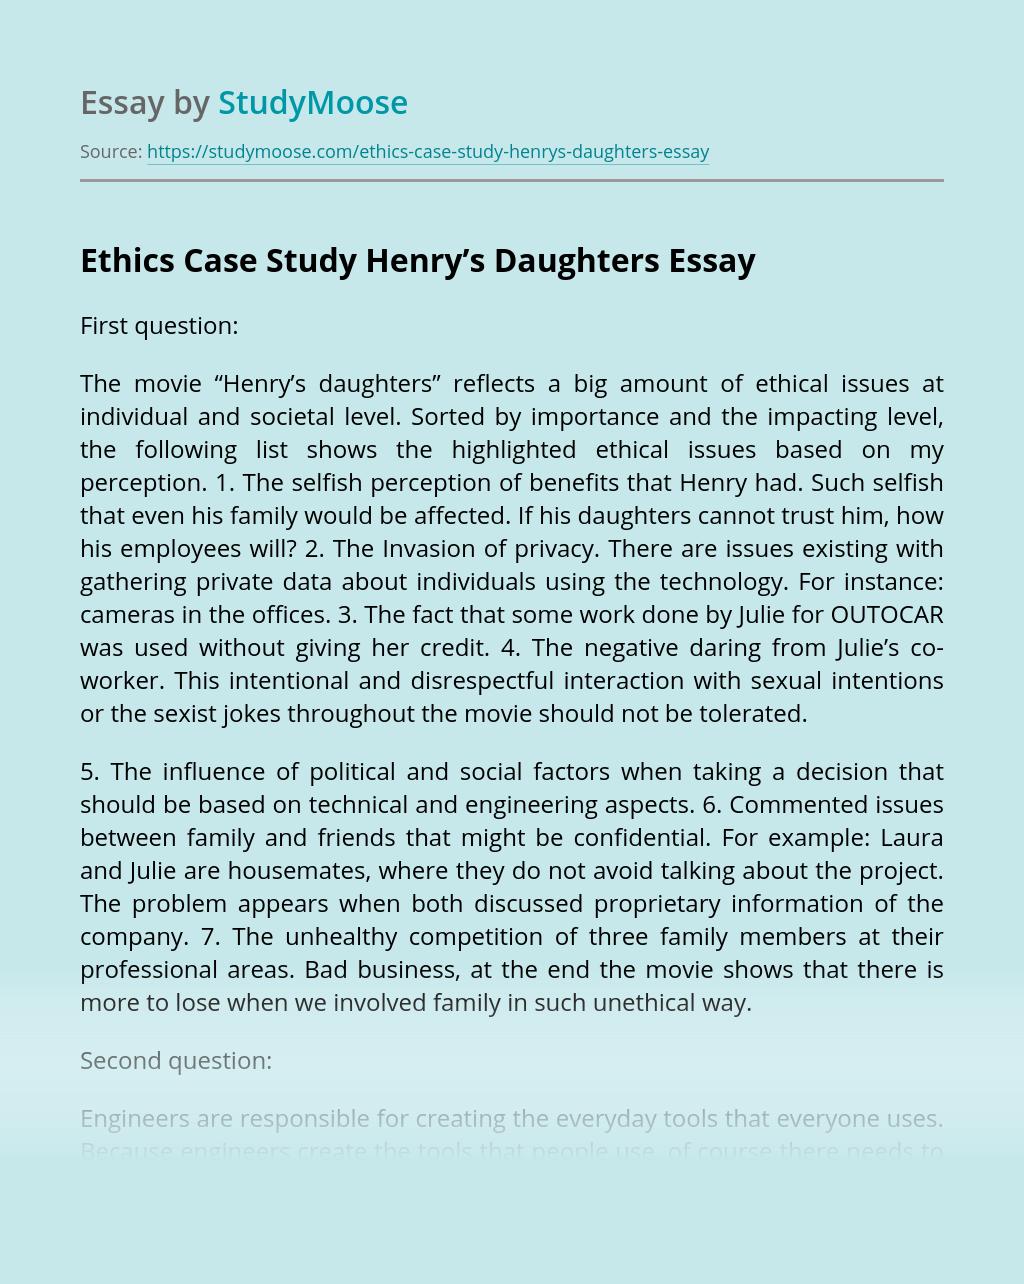 Ethics Case Study Henry's Daughters